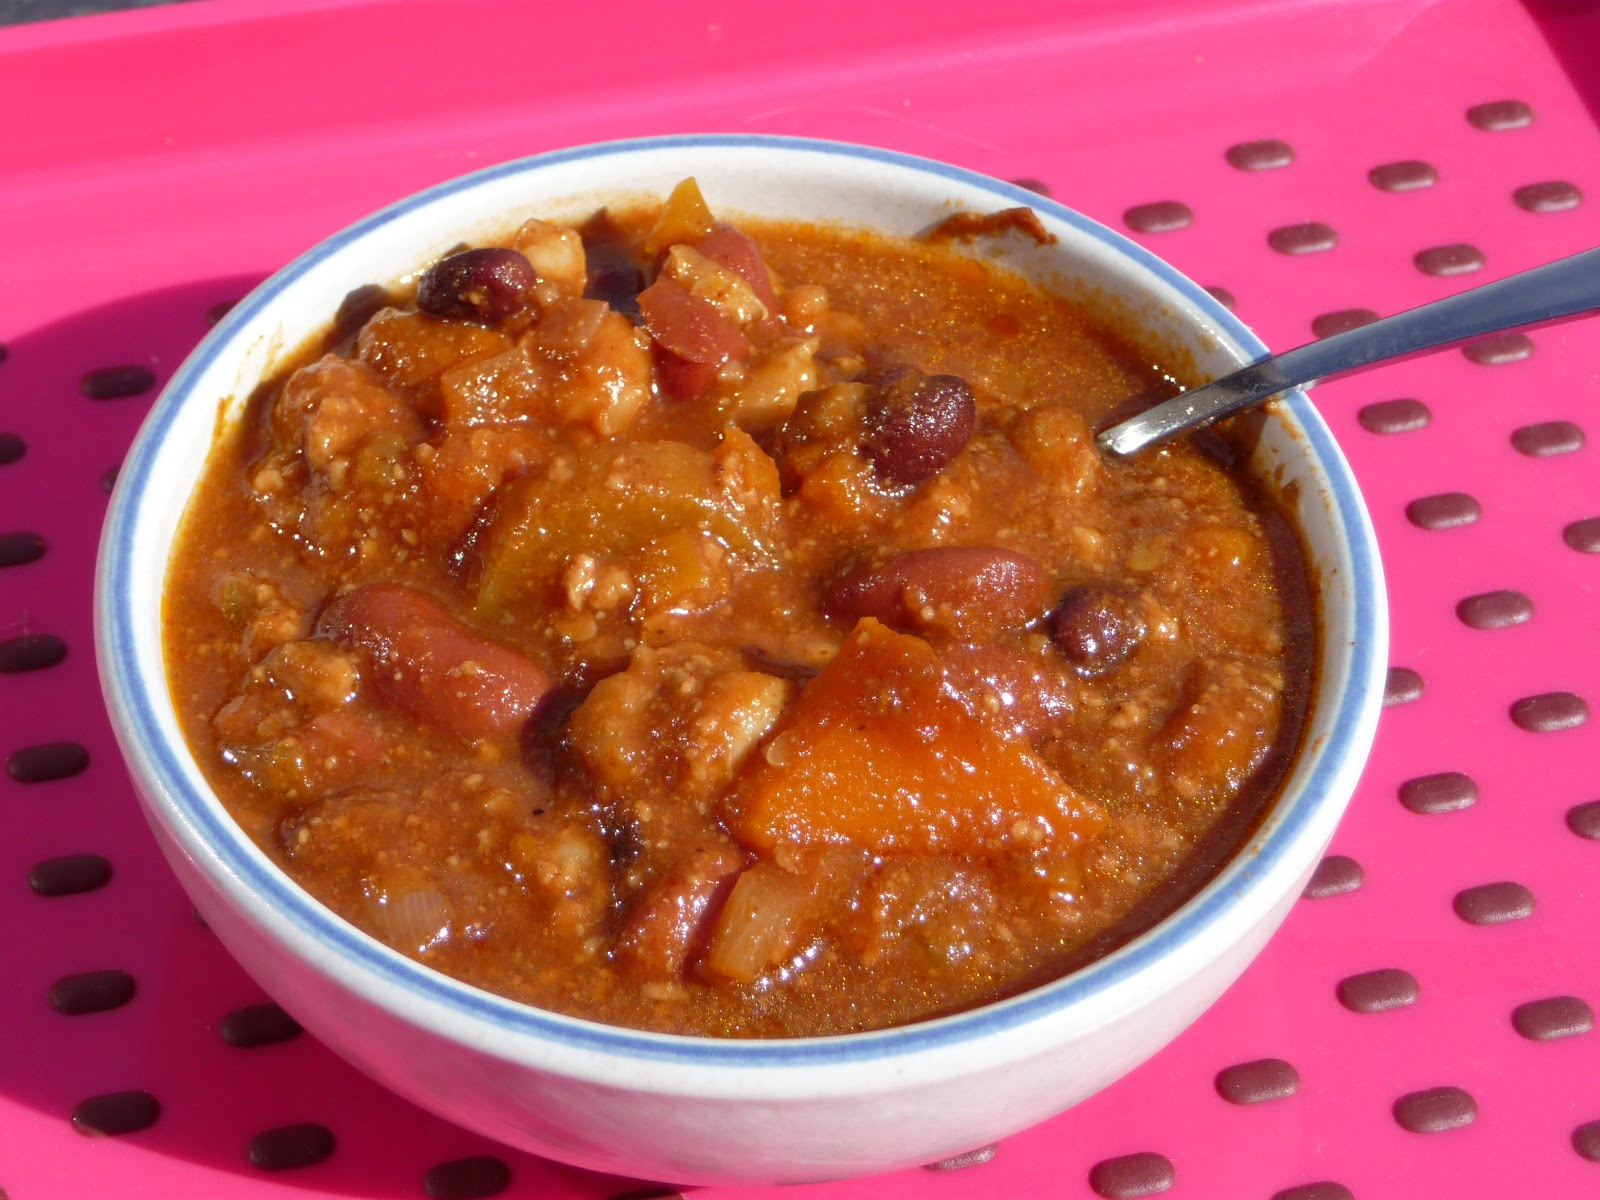 ... was adapted from Super Peanut Butter Chili and Sweet Potato Chili